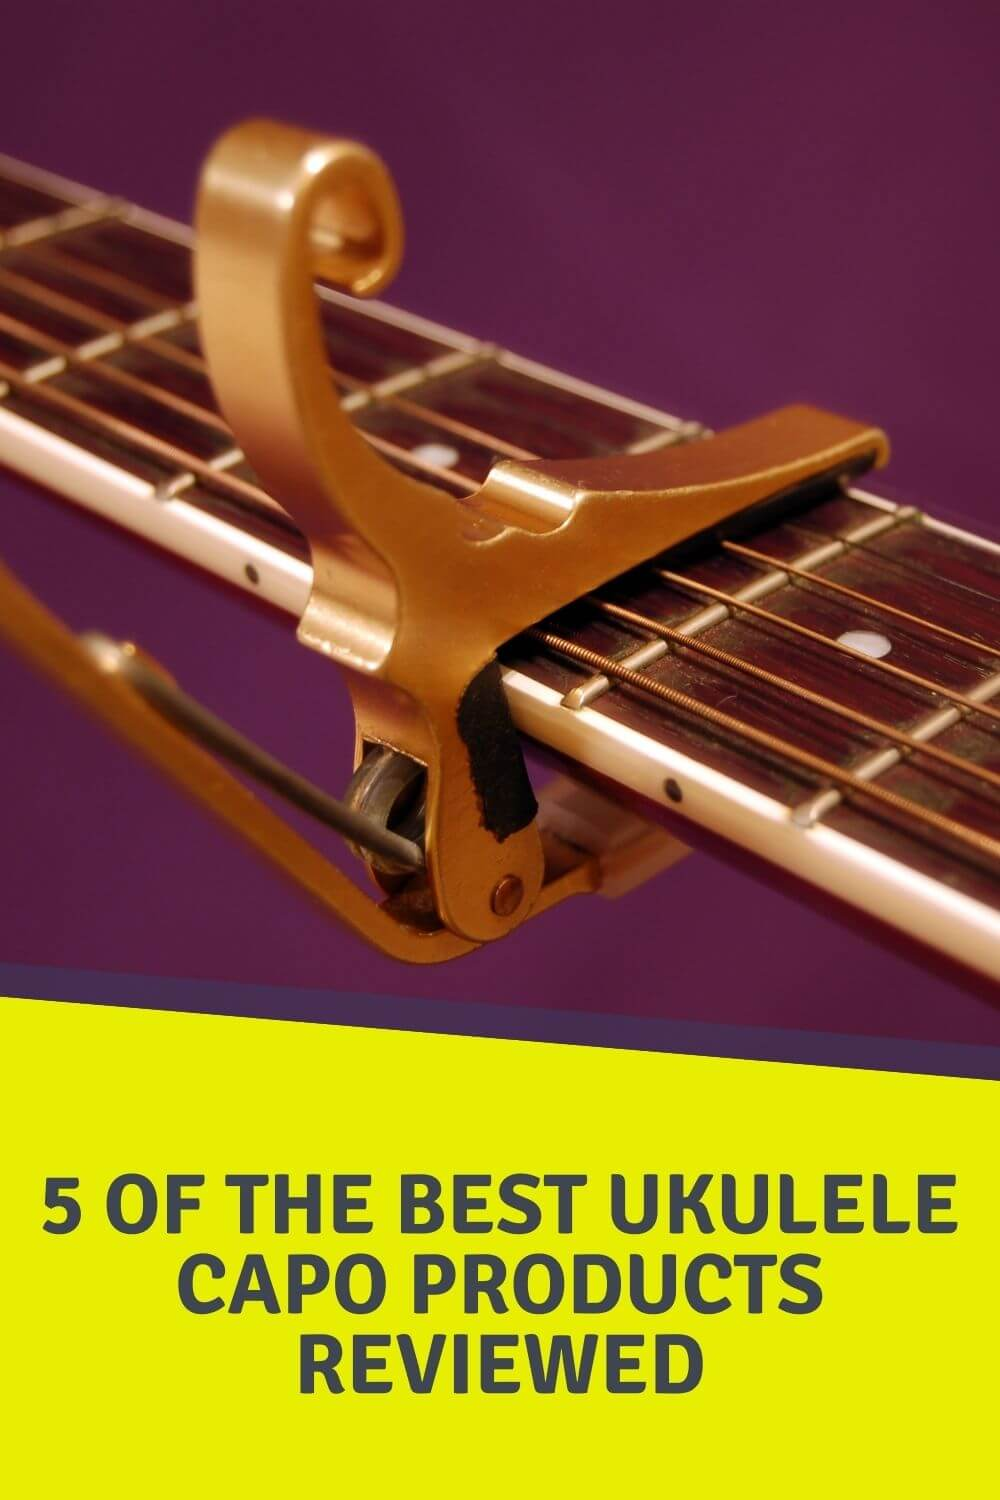 5 of the Best Ukulele Capo Products Reviewed